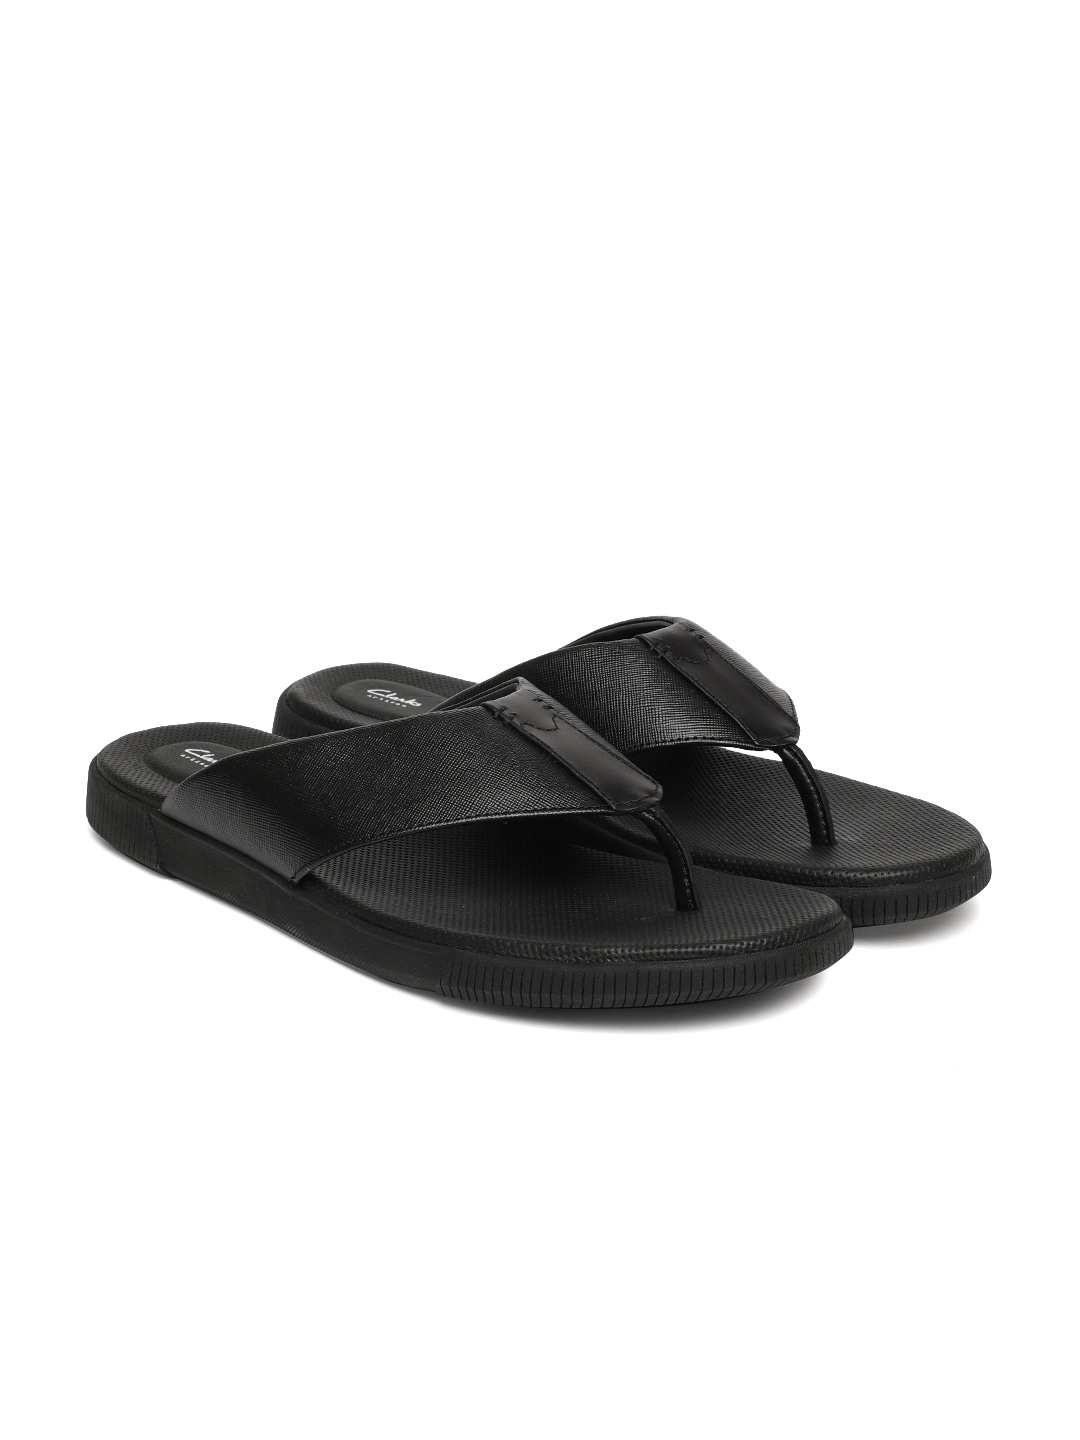 96f31dbad Clarks Mens Sandals - Buy Clarks Mens Sandals online in India